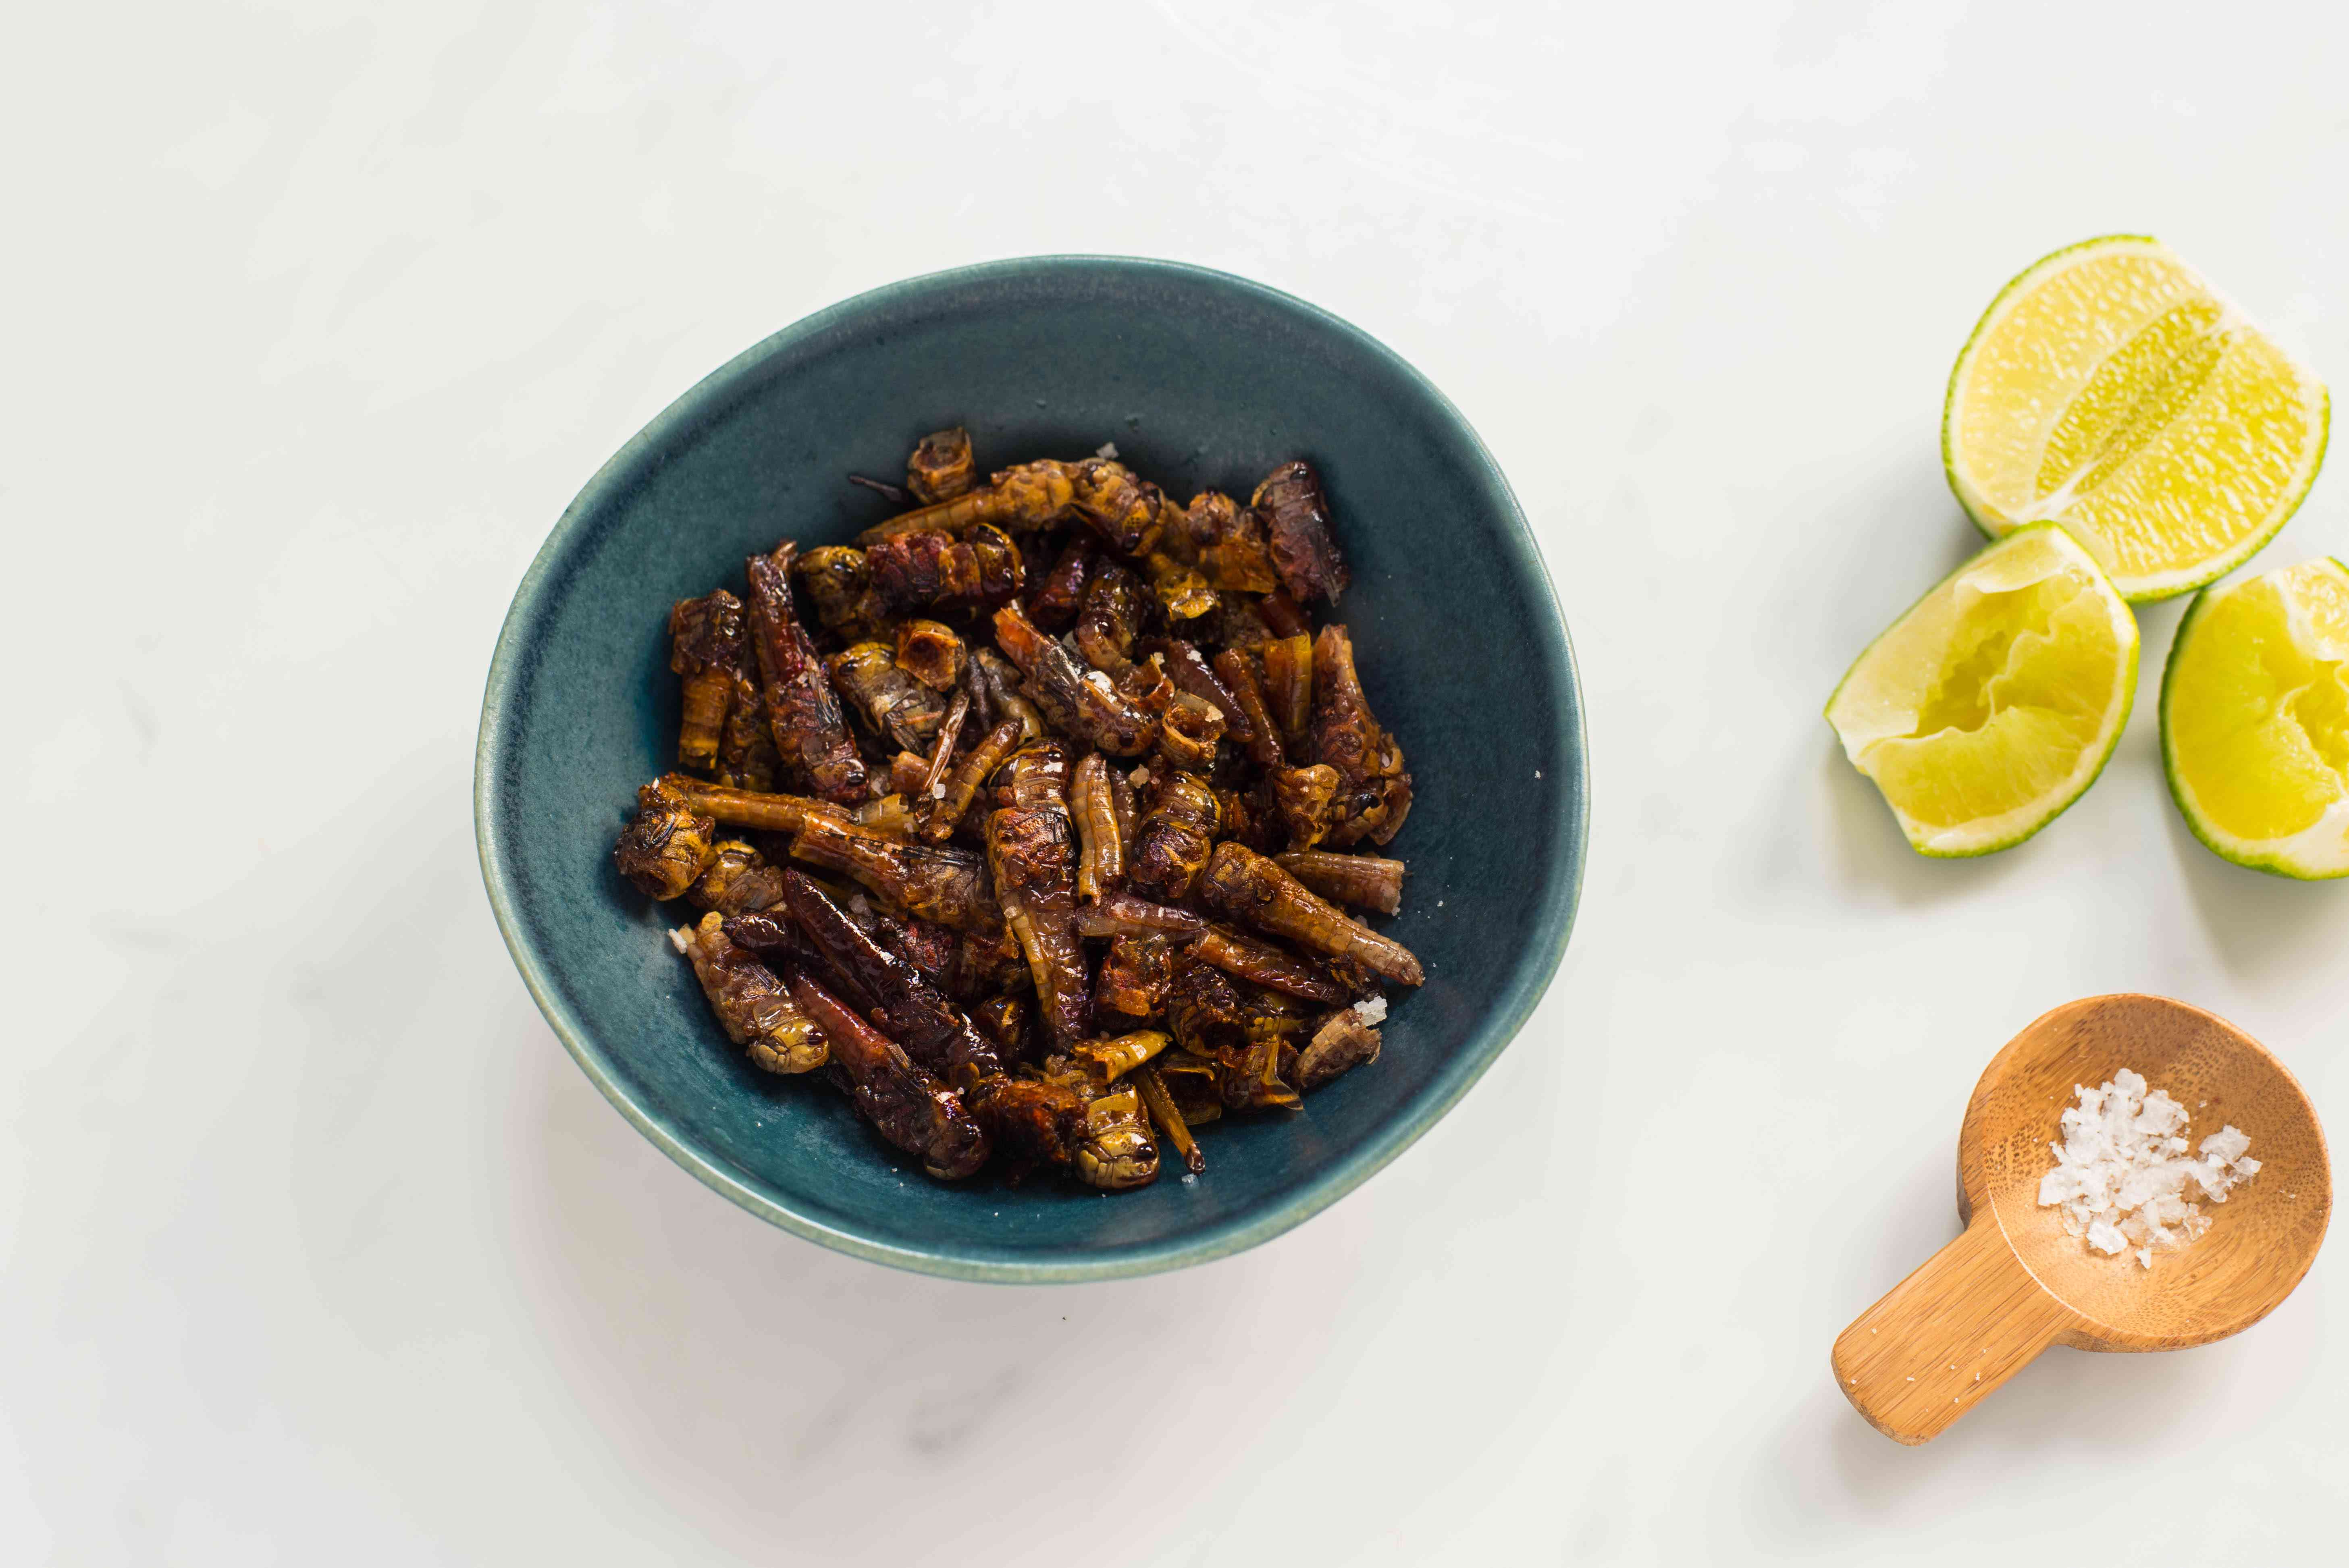 Grasshoppers in a bowl sprinkles with salt